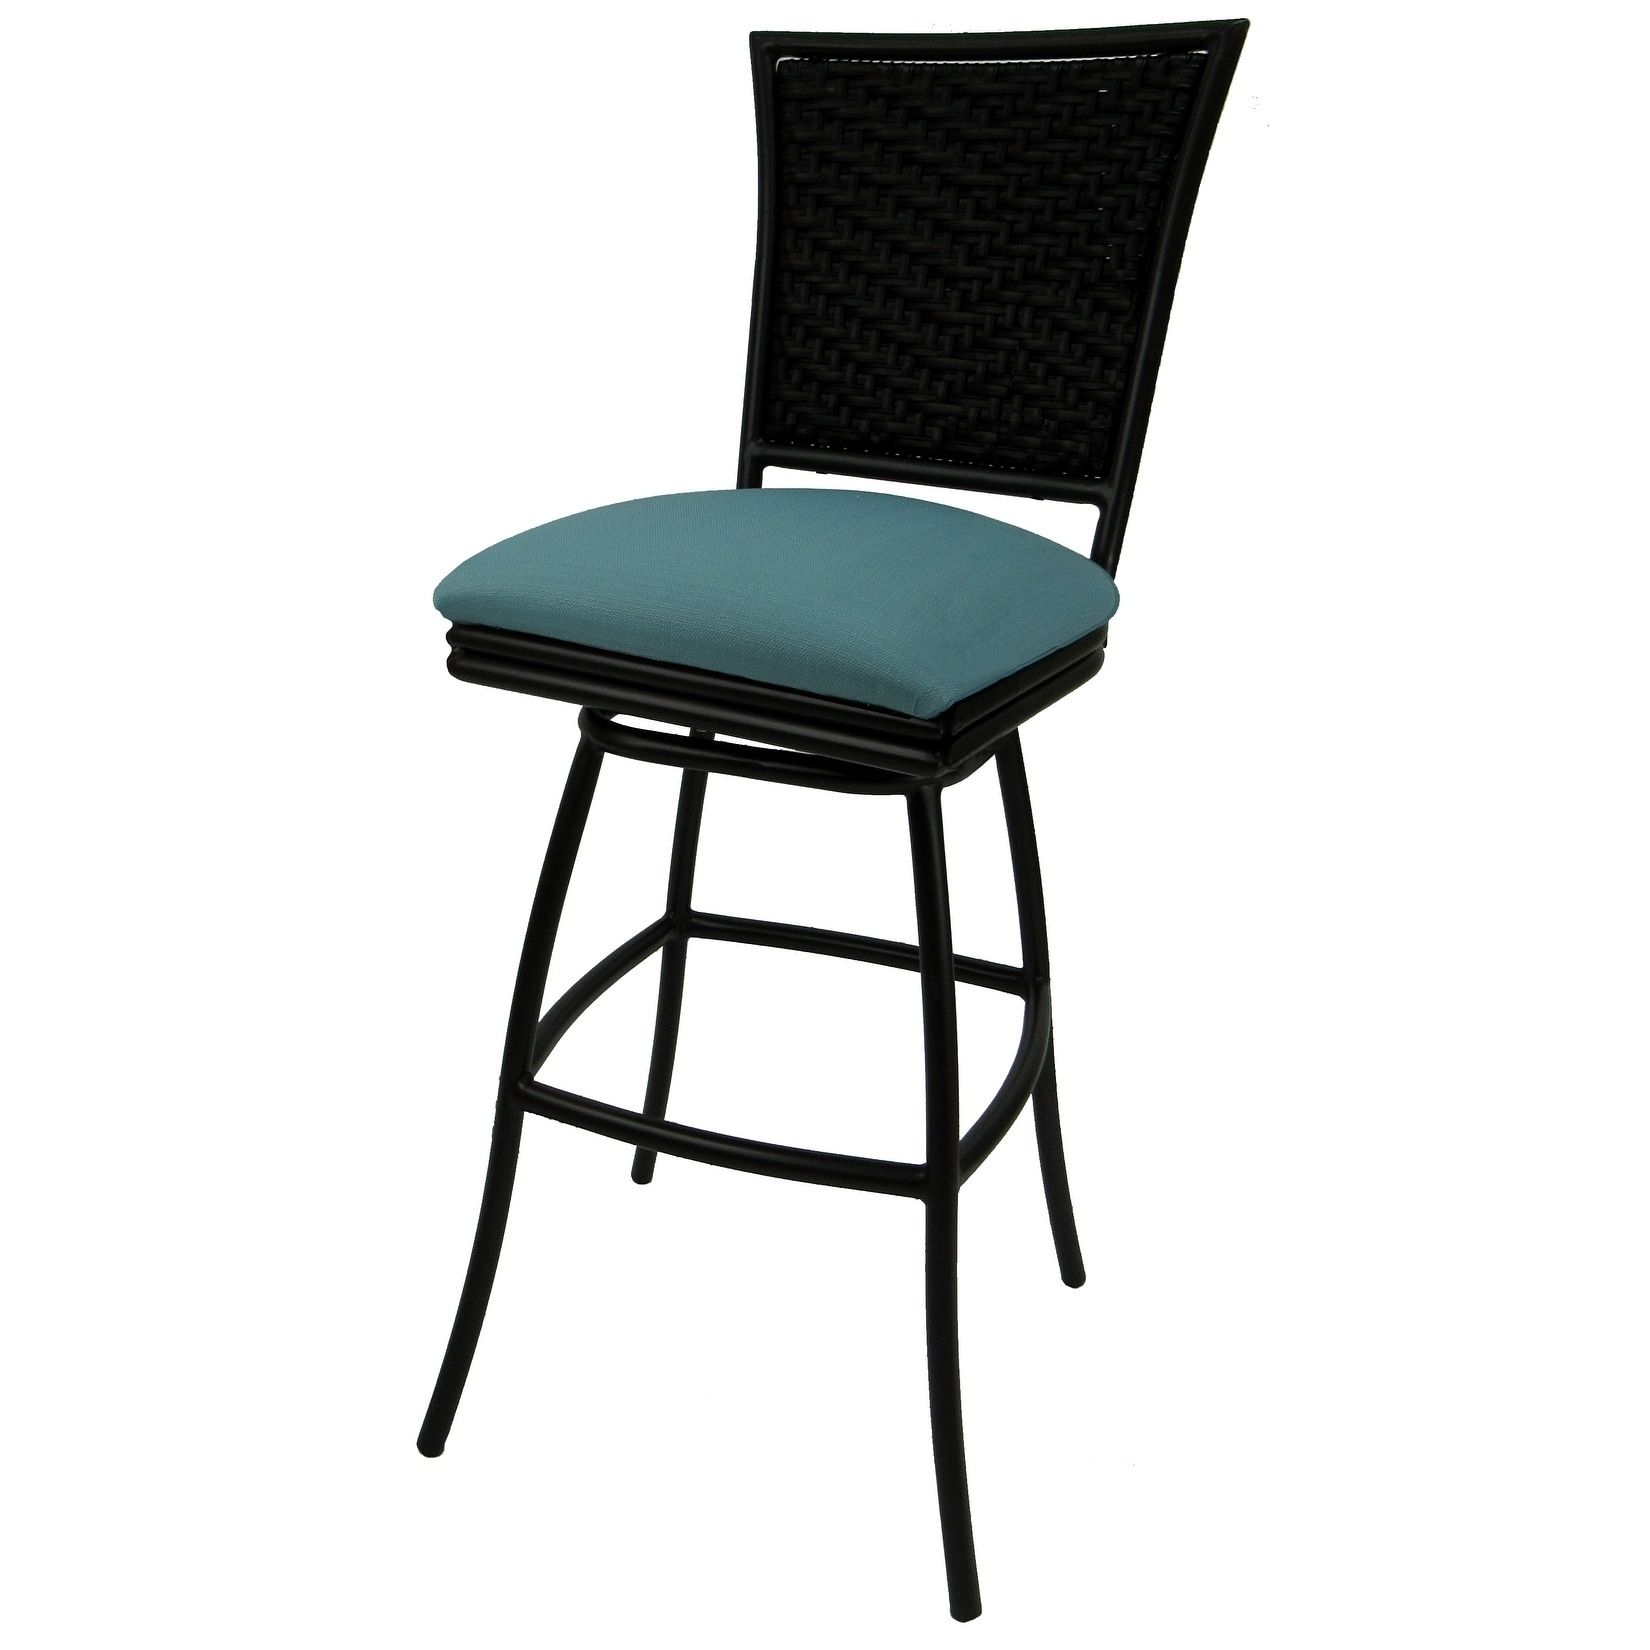 Swivel Patio Outdoor Bar Stool Armles Black Frame Erin 30 N A